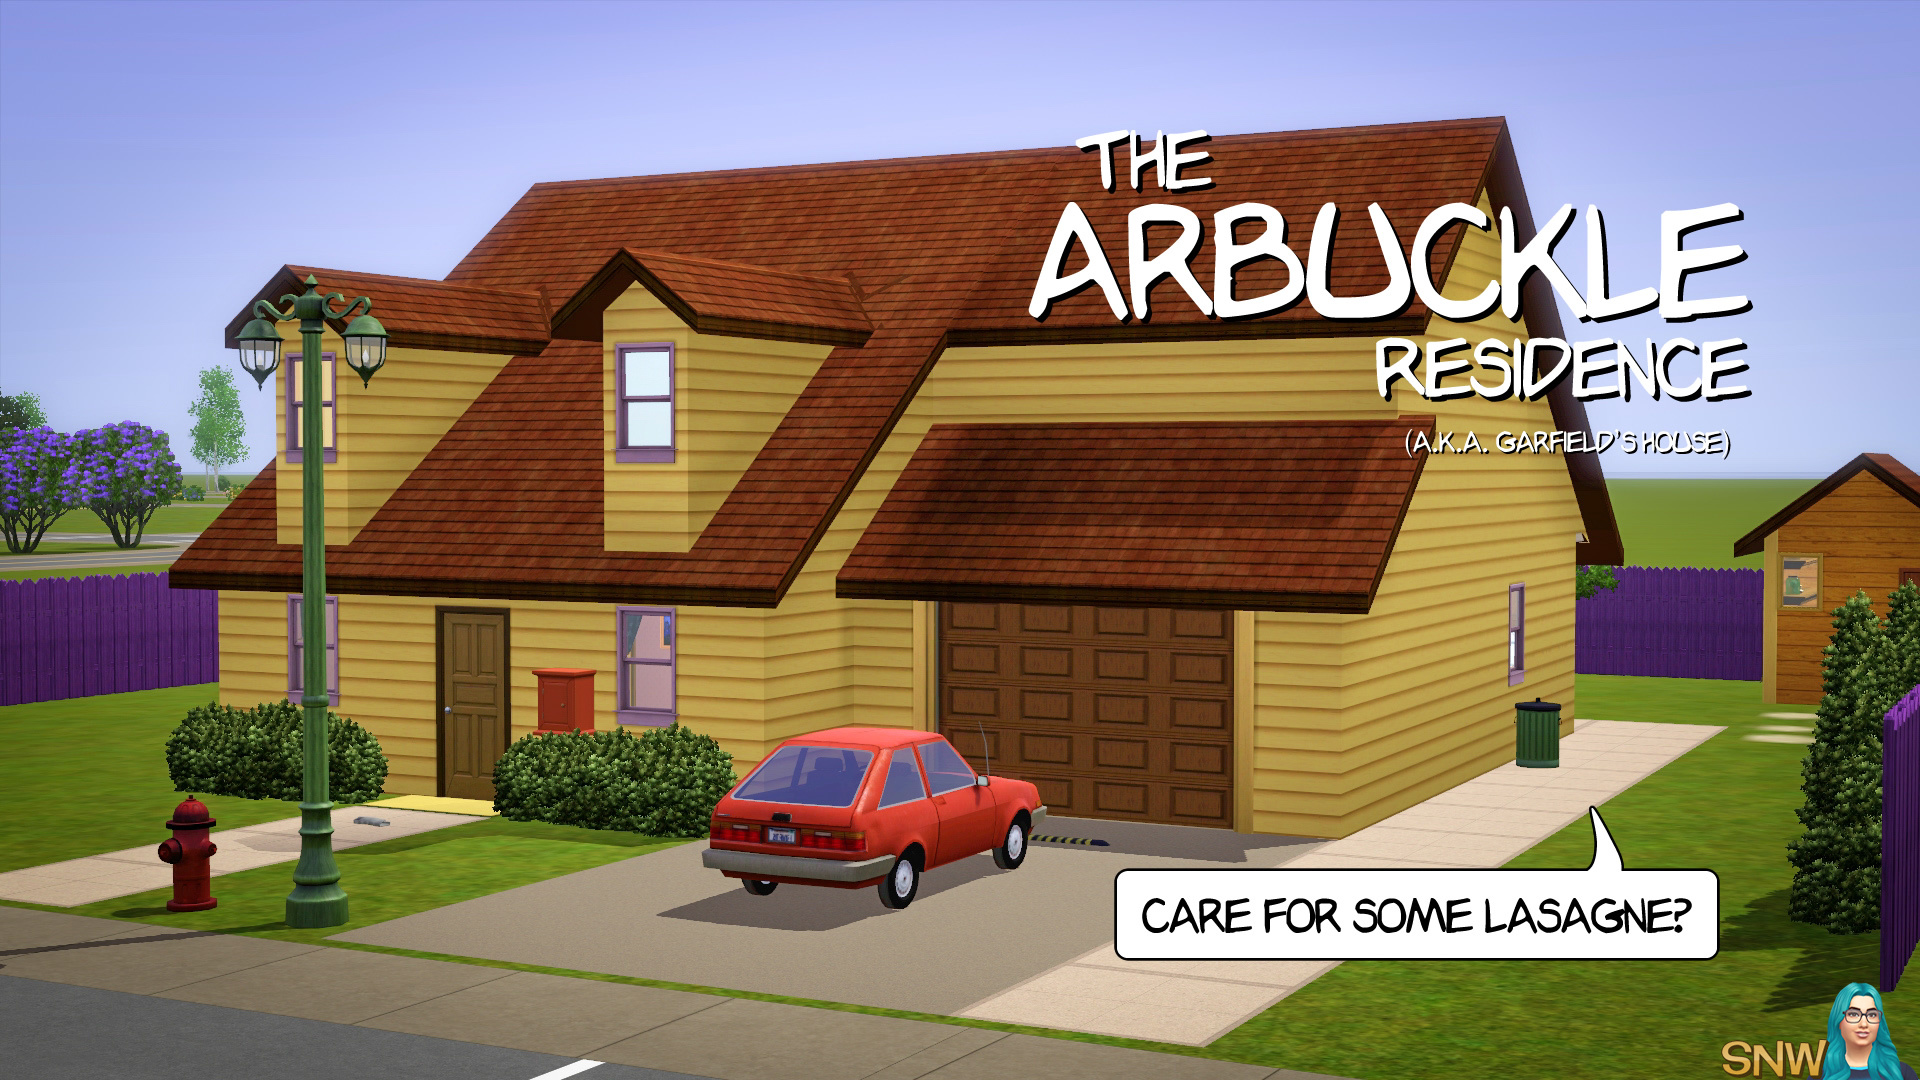 The Arbuckle Residence (Garfield's House)